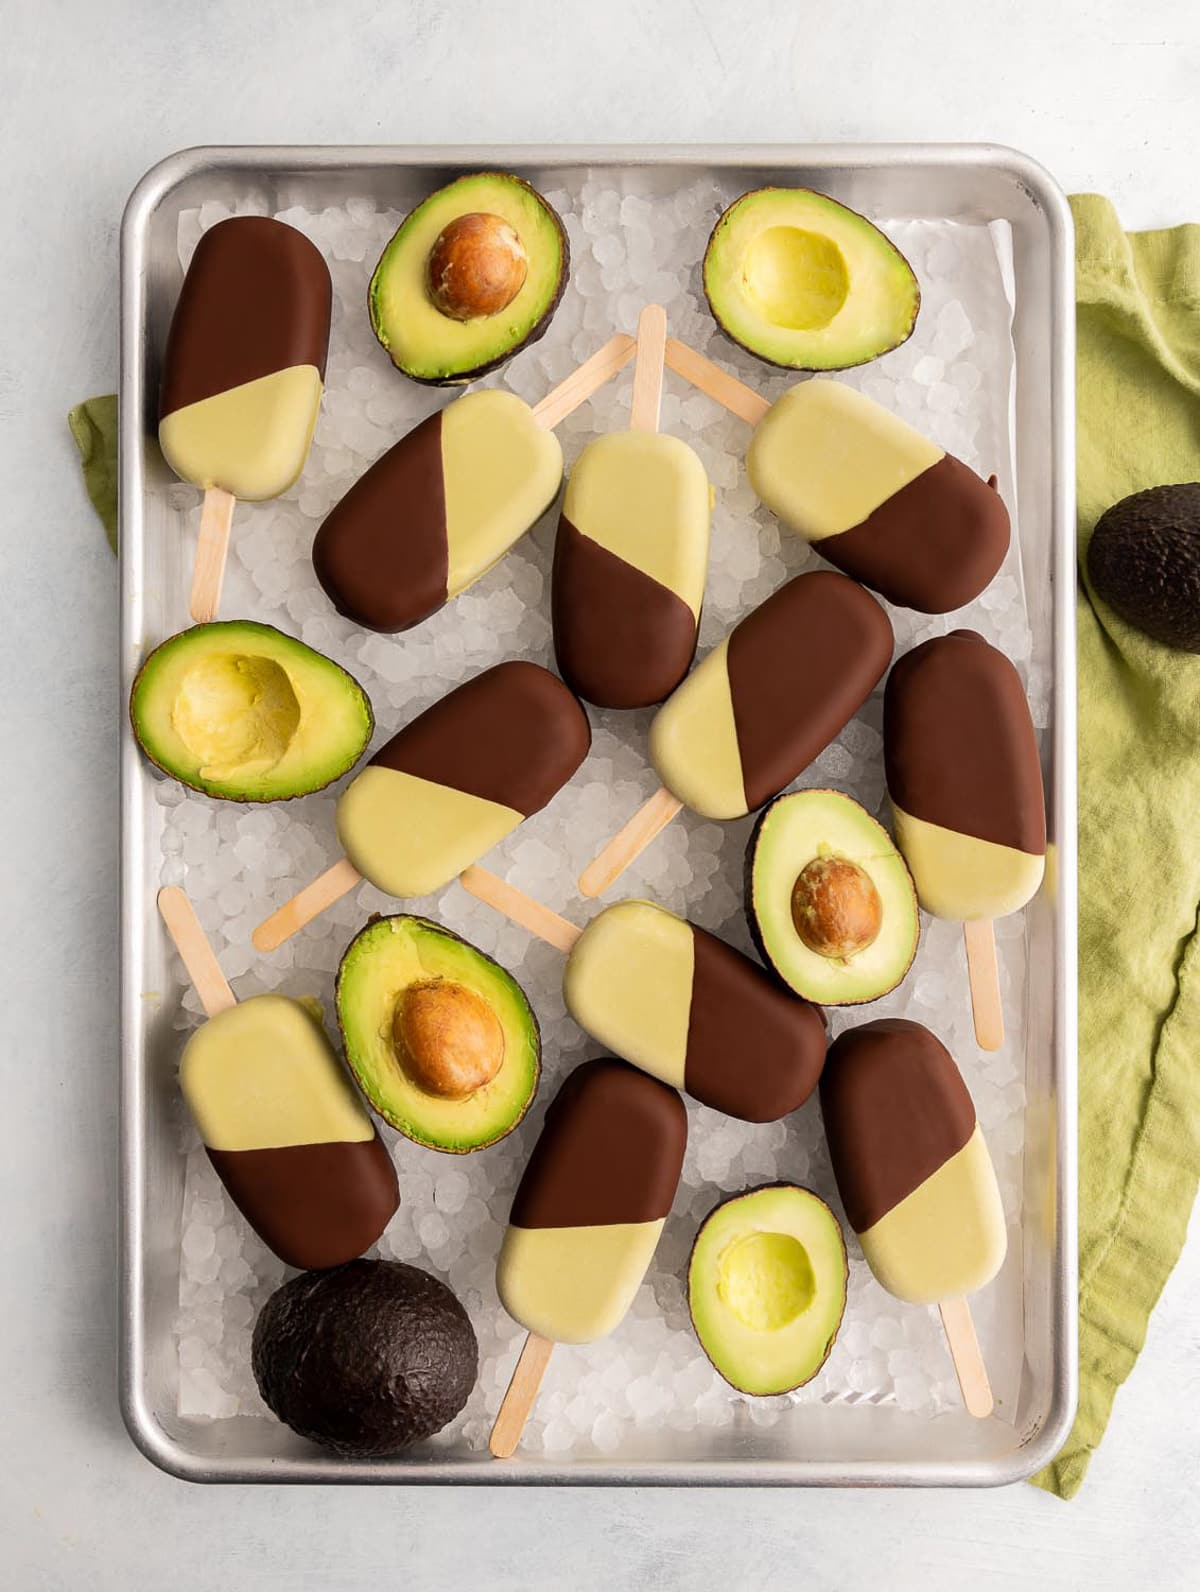 tray of ice with green avocado ice cream bars half dipped in chocolate on the ice with avocados cut in half